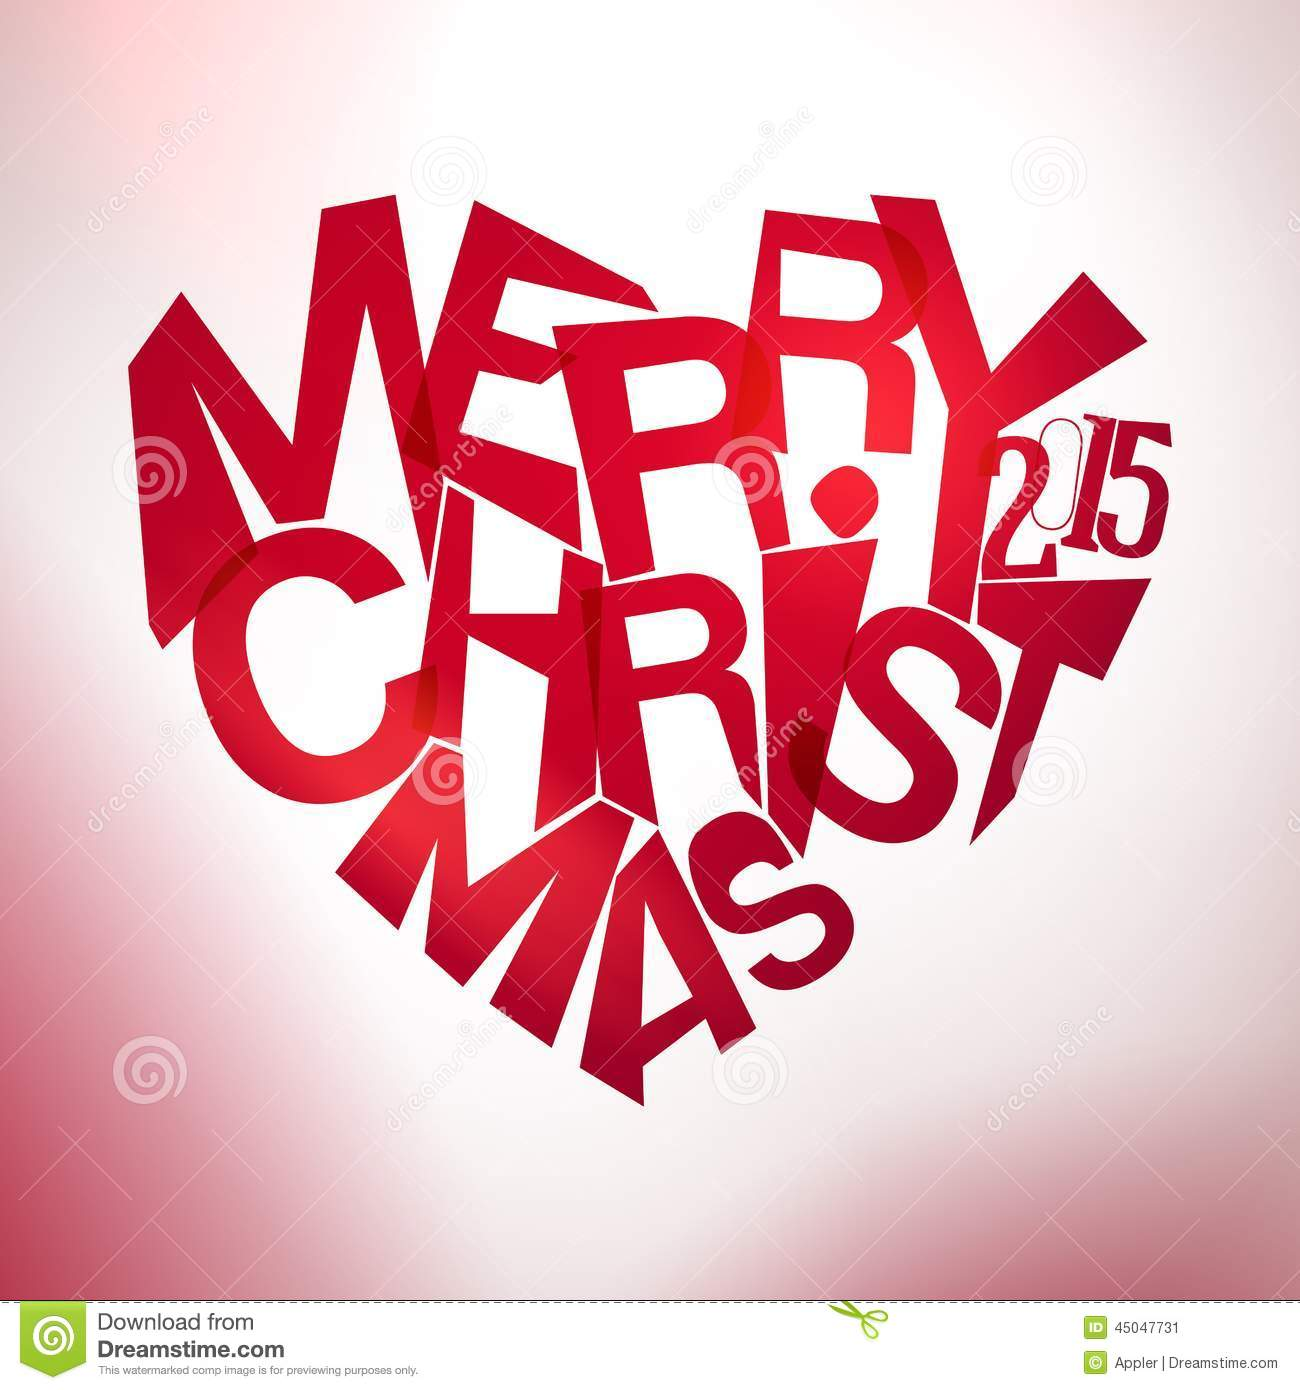 Merry christmas typography at heart shape stock vector